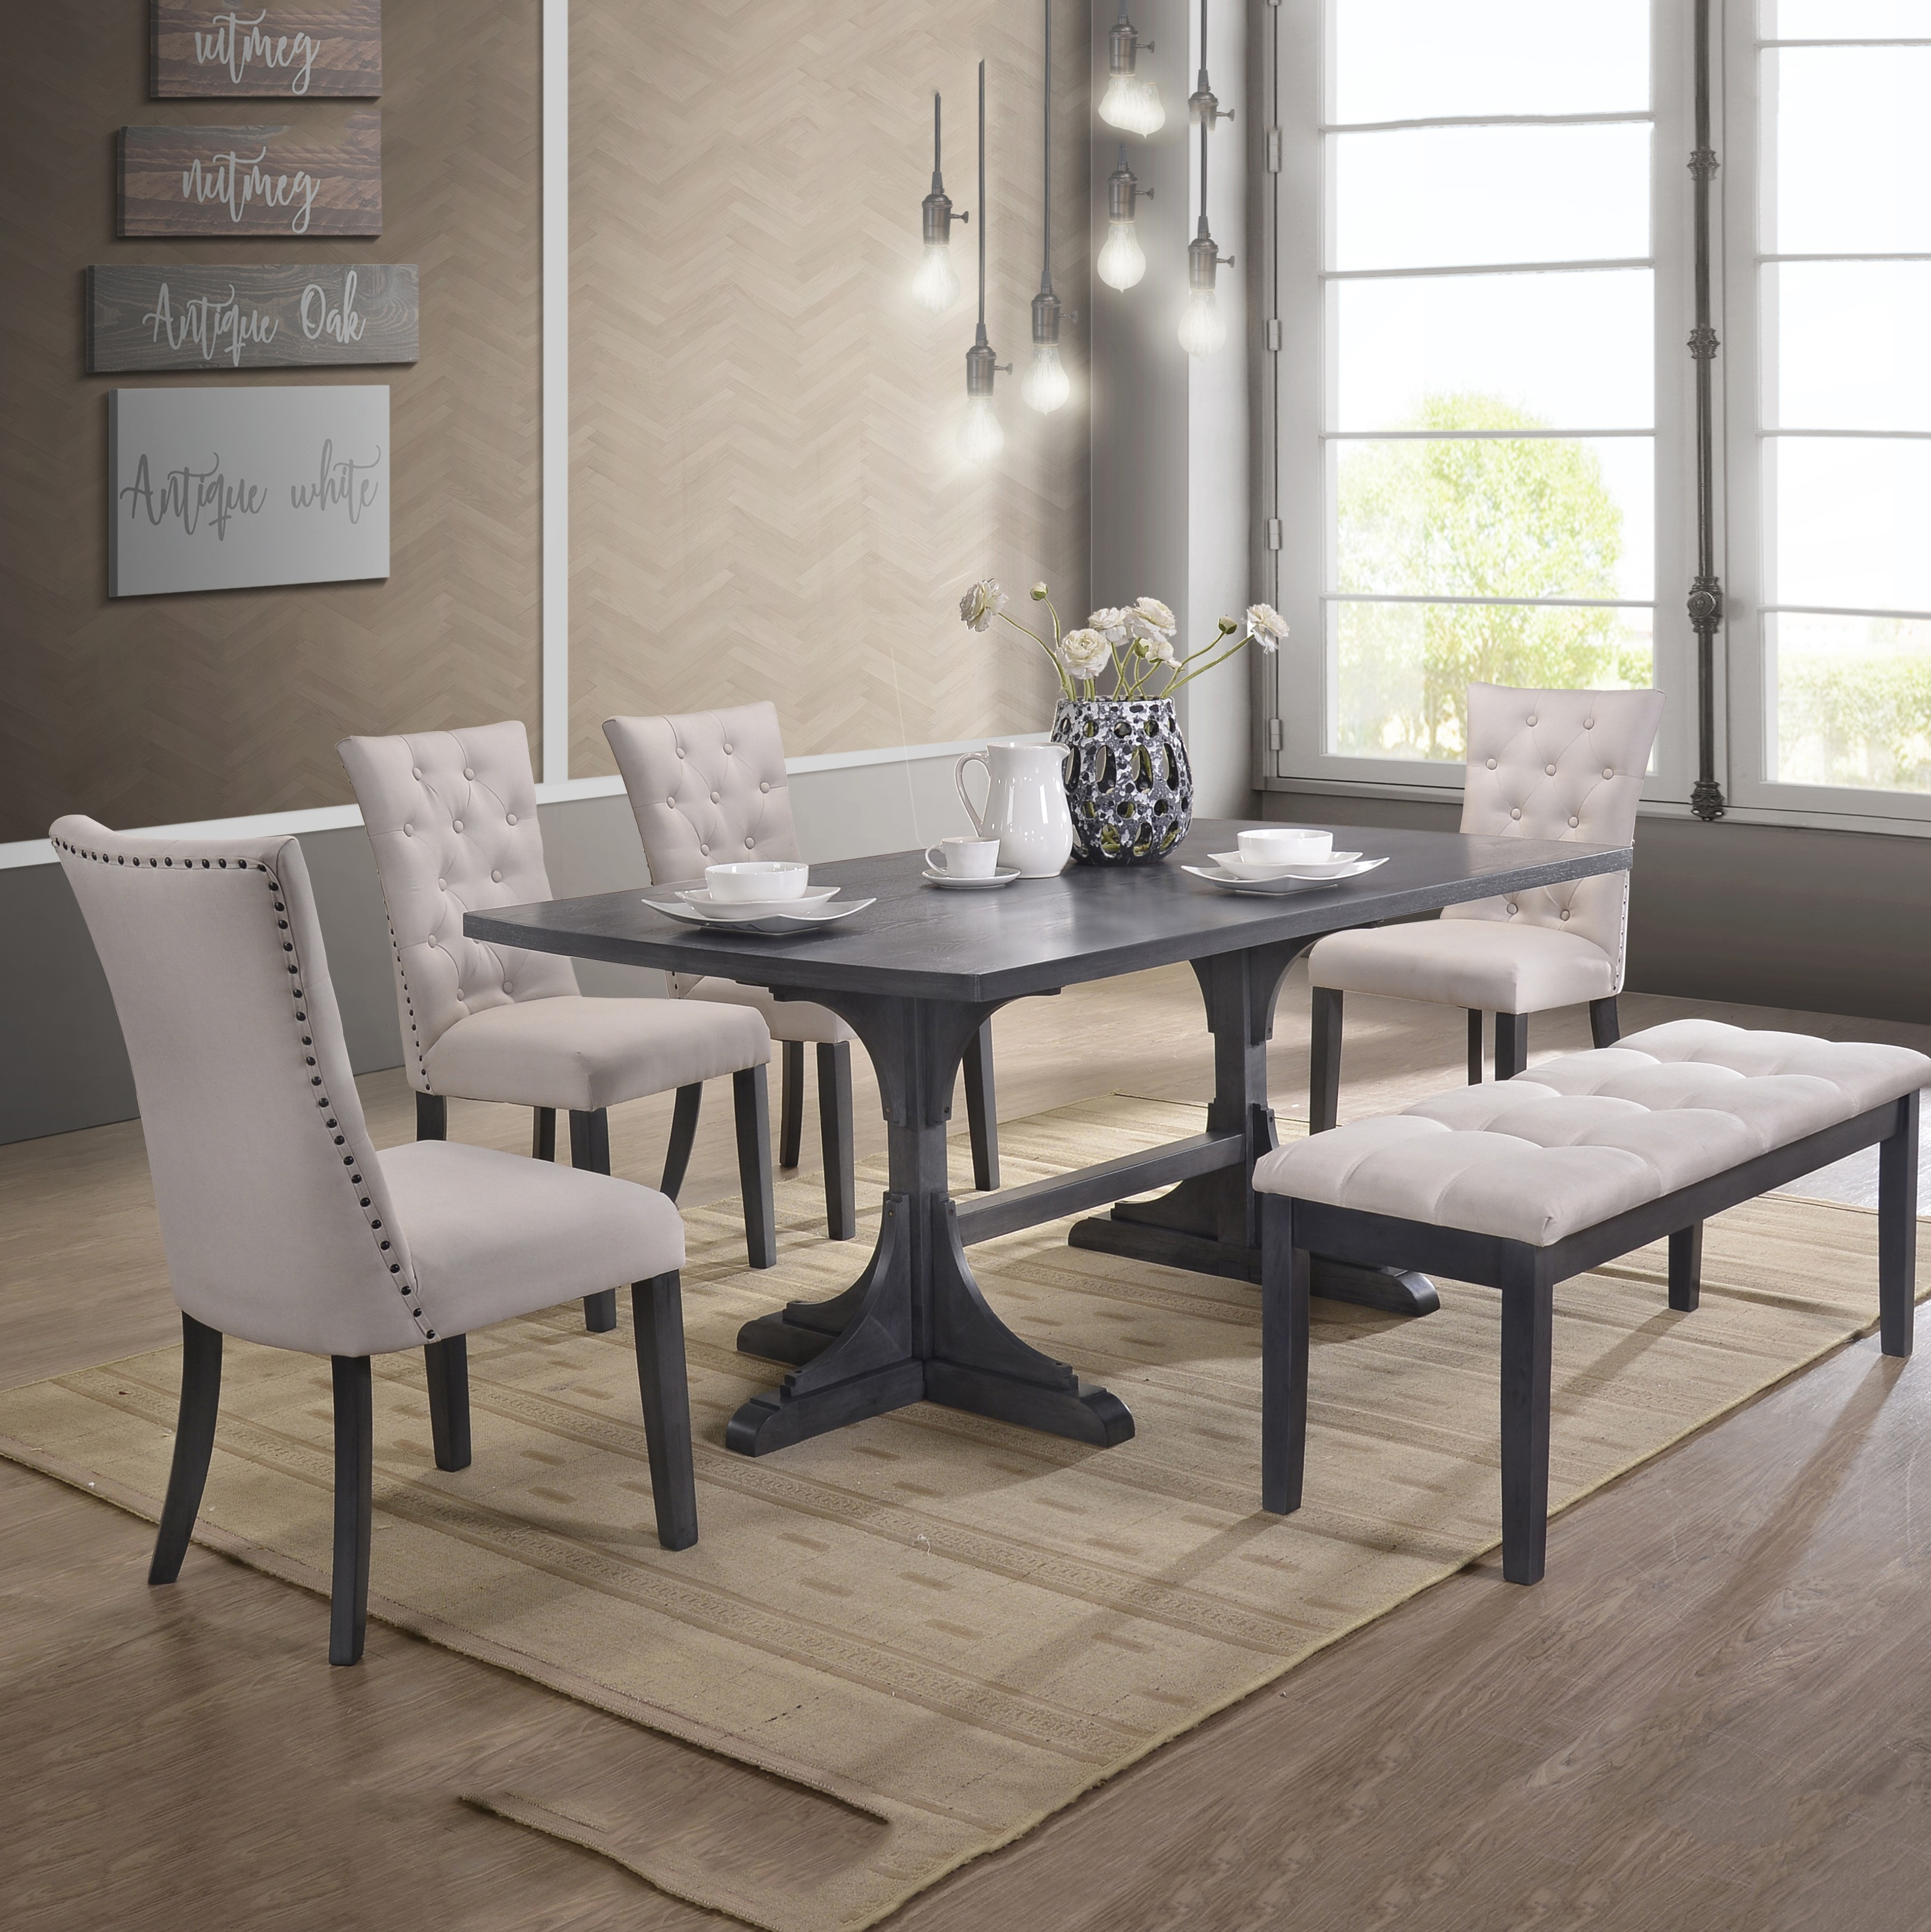 Best Quality Furniture Modern Design 6pc Dining Set with bench D44